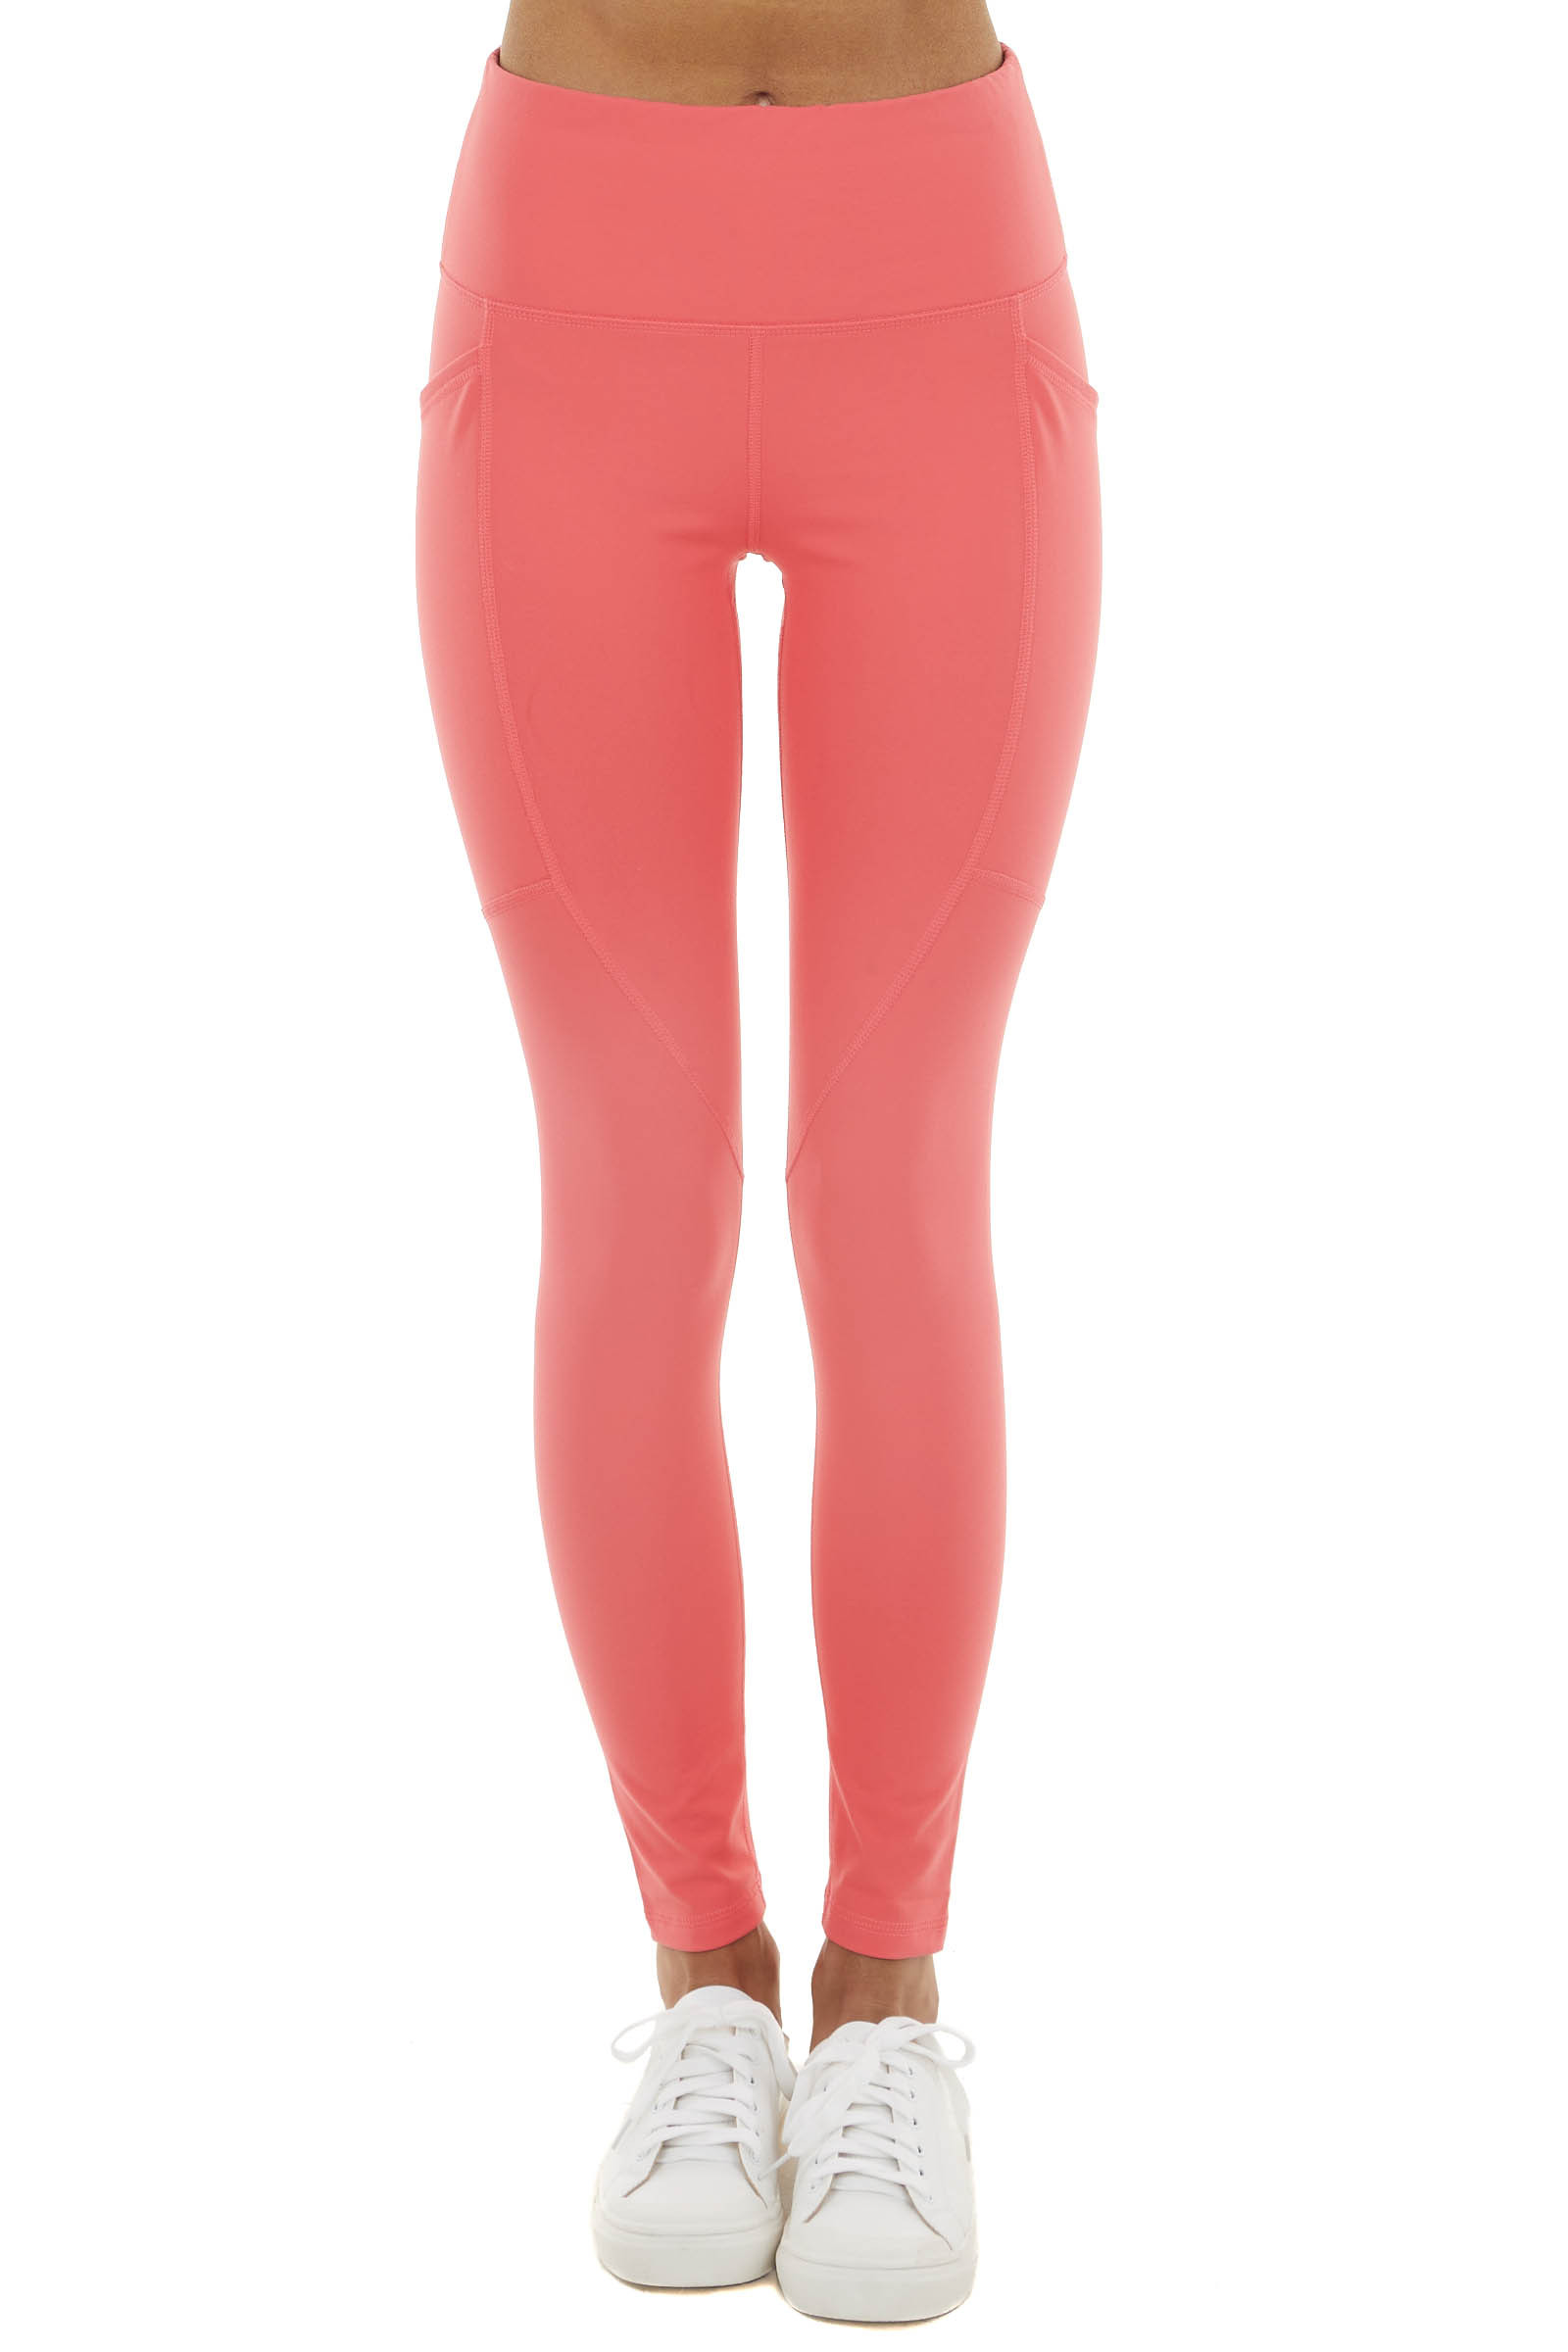 Bright Punch High Waisted Leggings with Side Pockets